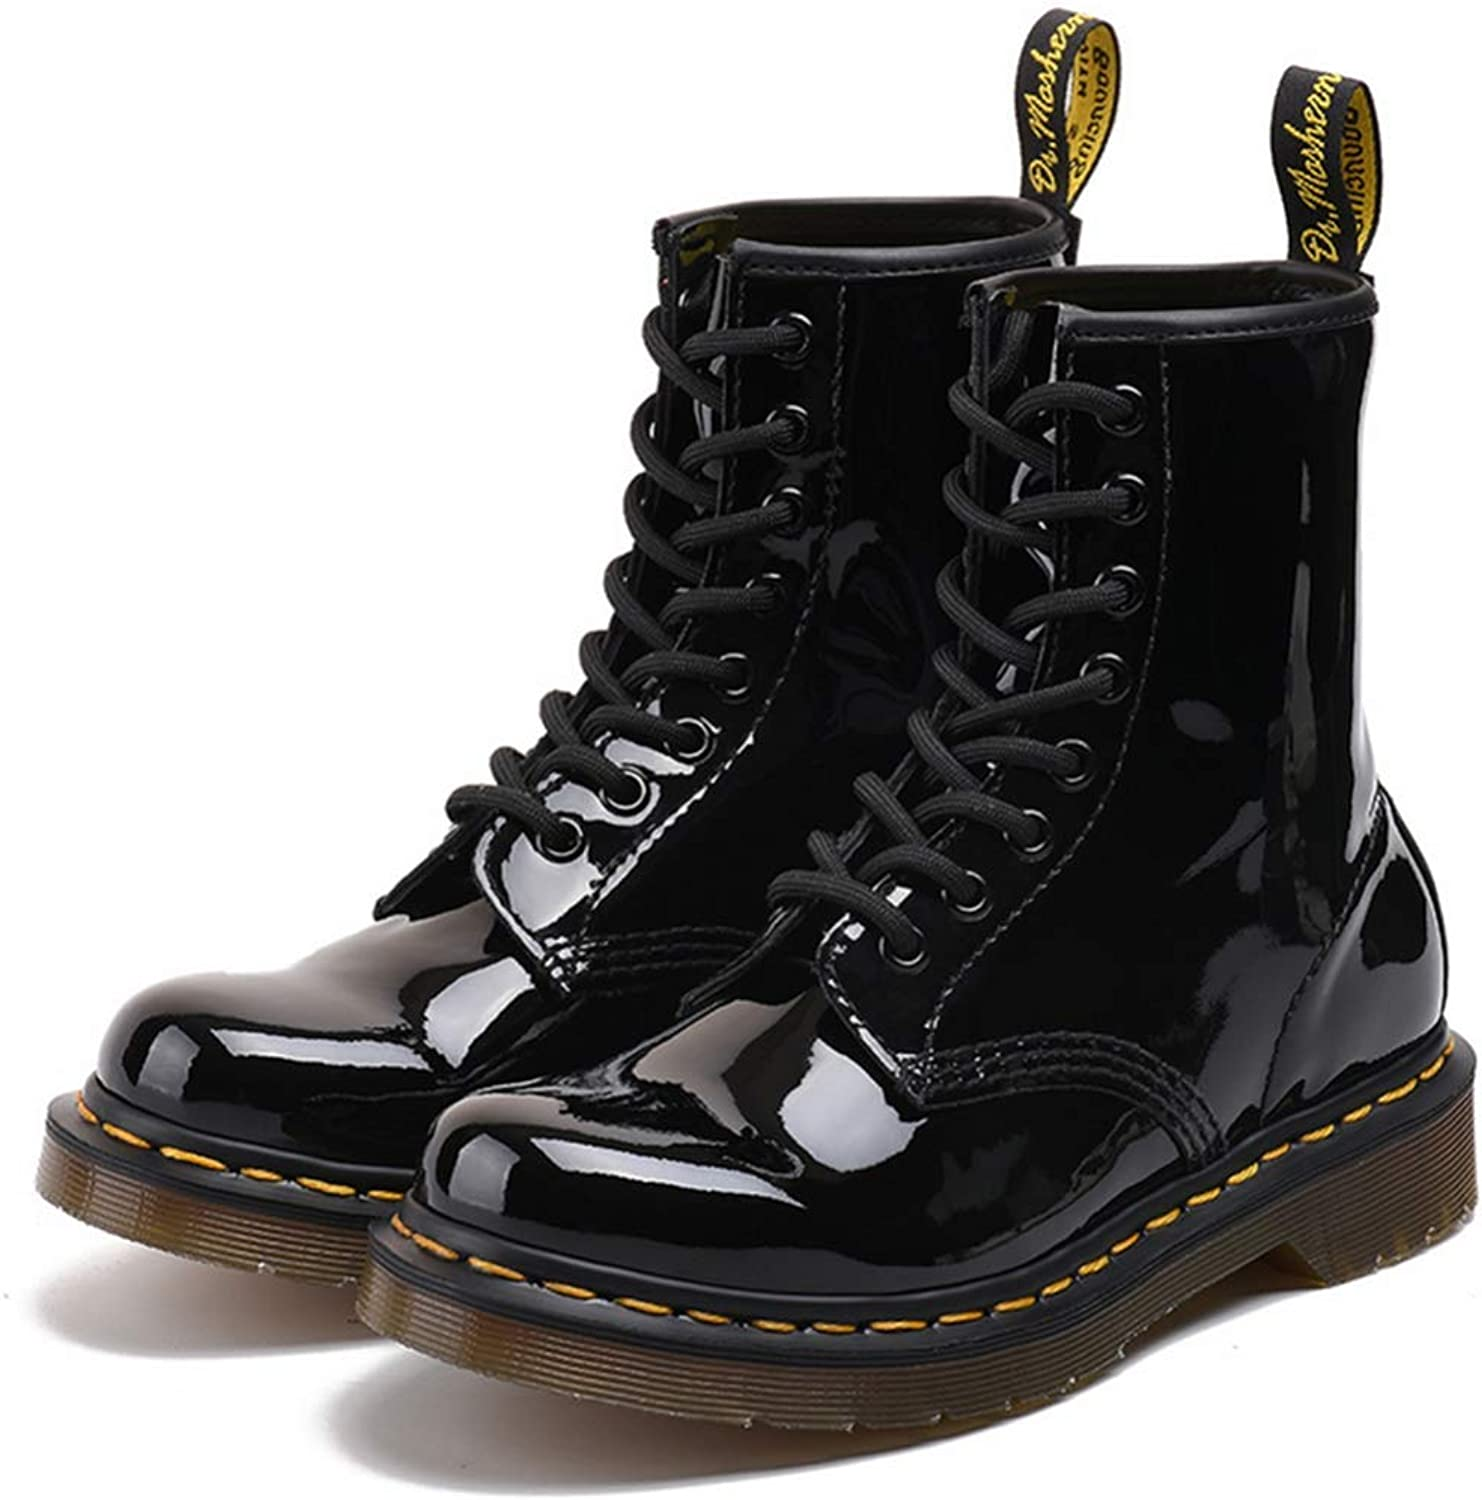 Shiney Women's Martin Boots Bright Leather Patent Leather High Boots 8 Holes Black Classic Model Fall Winter